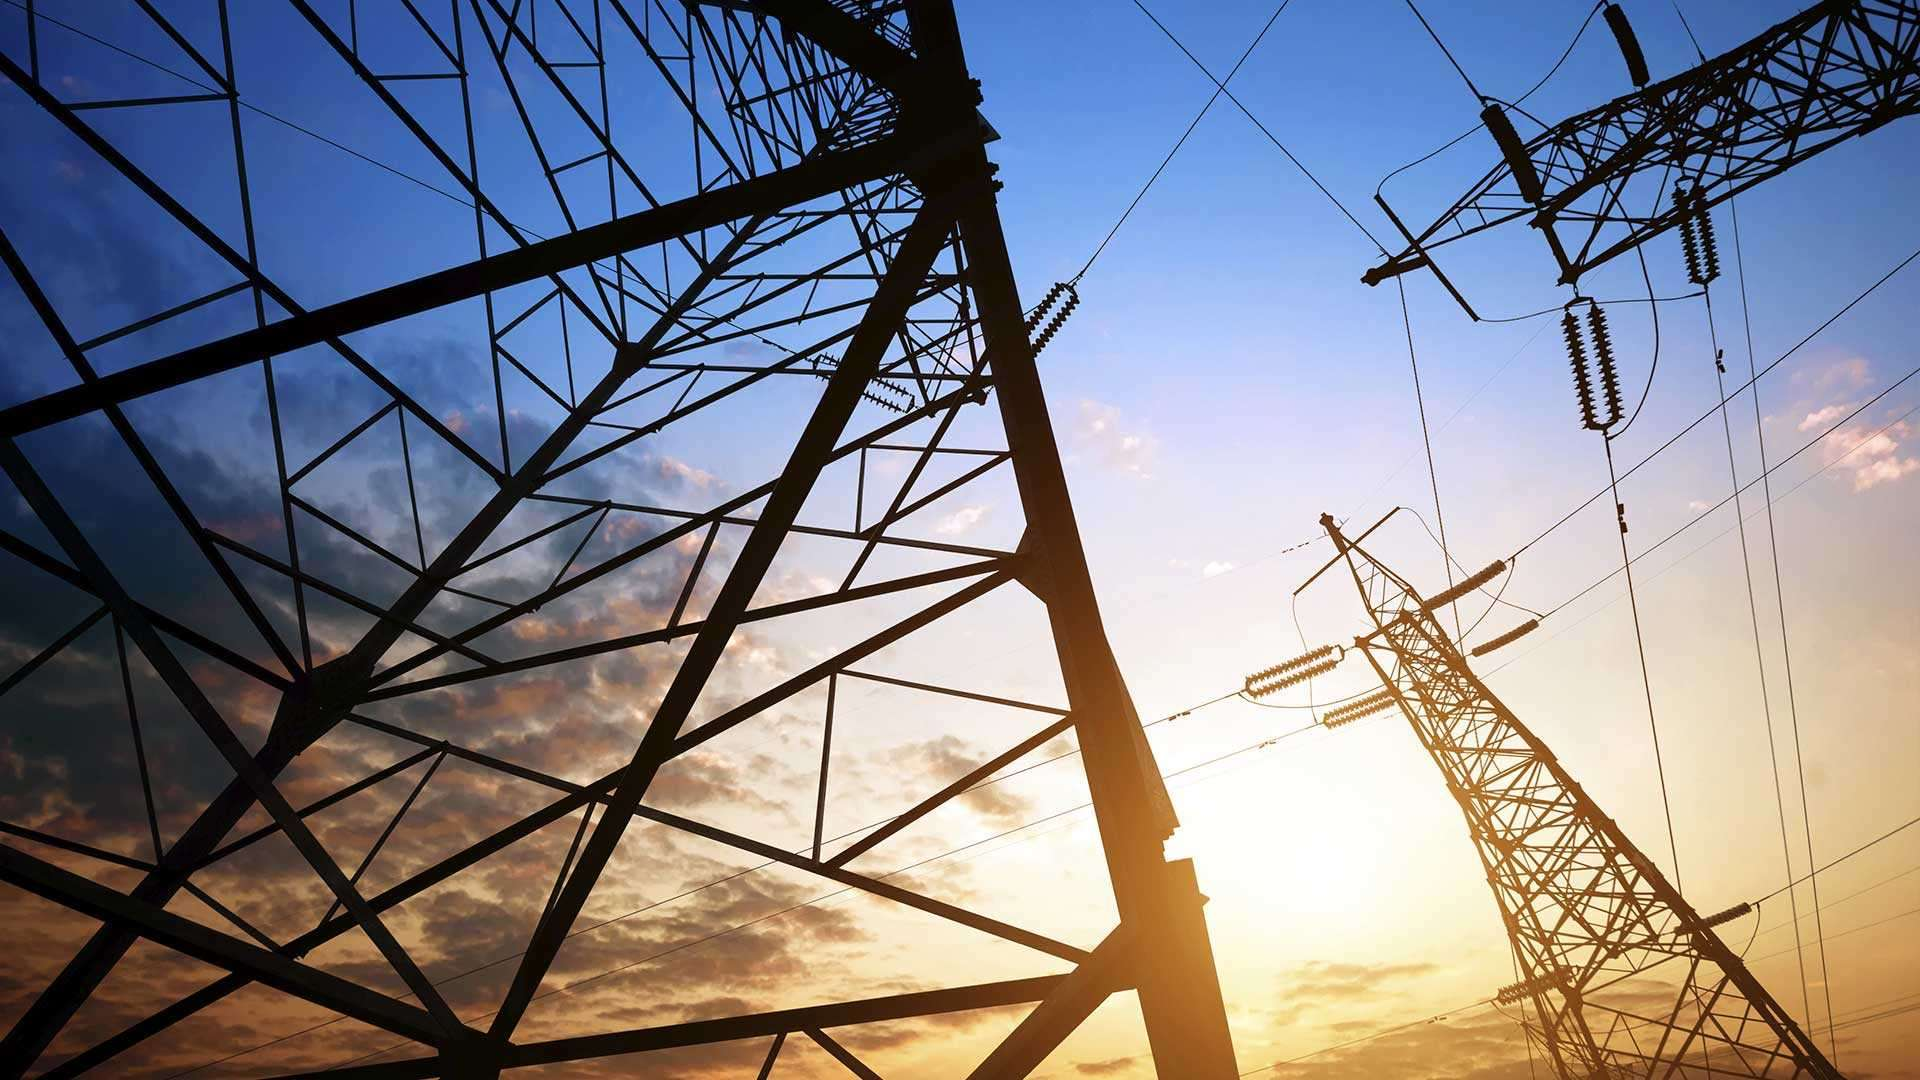 A photo of electric pylons